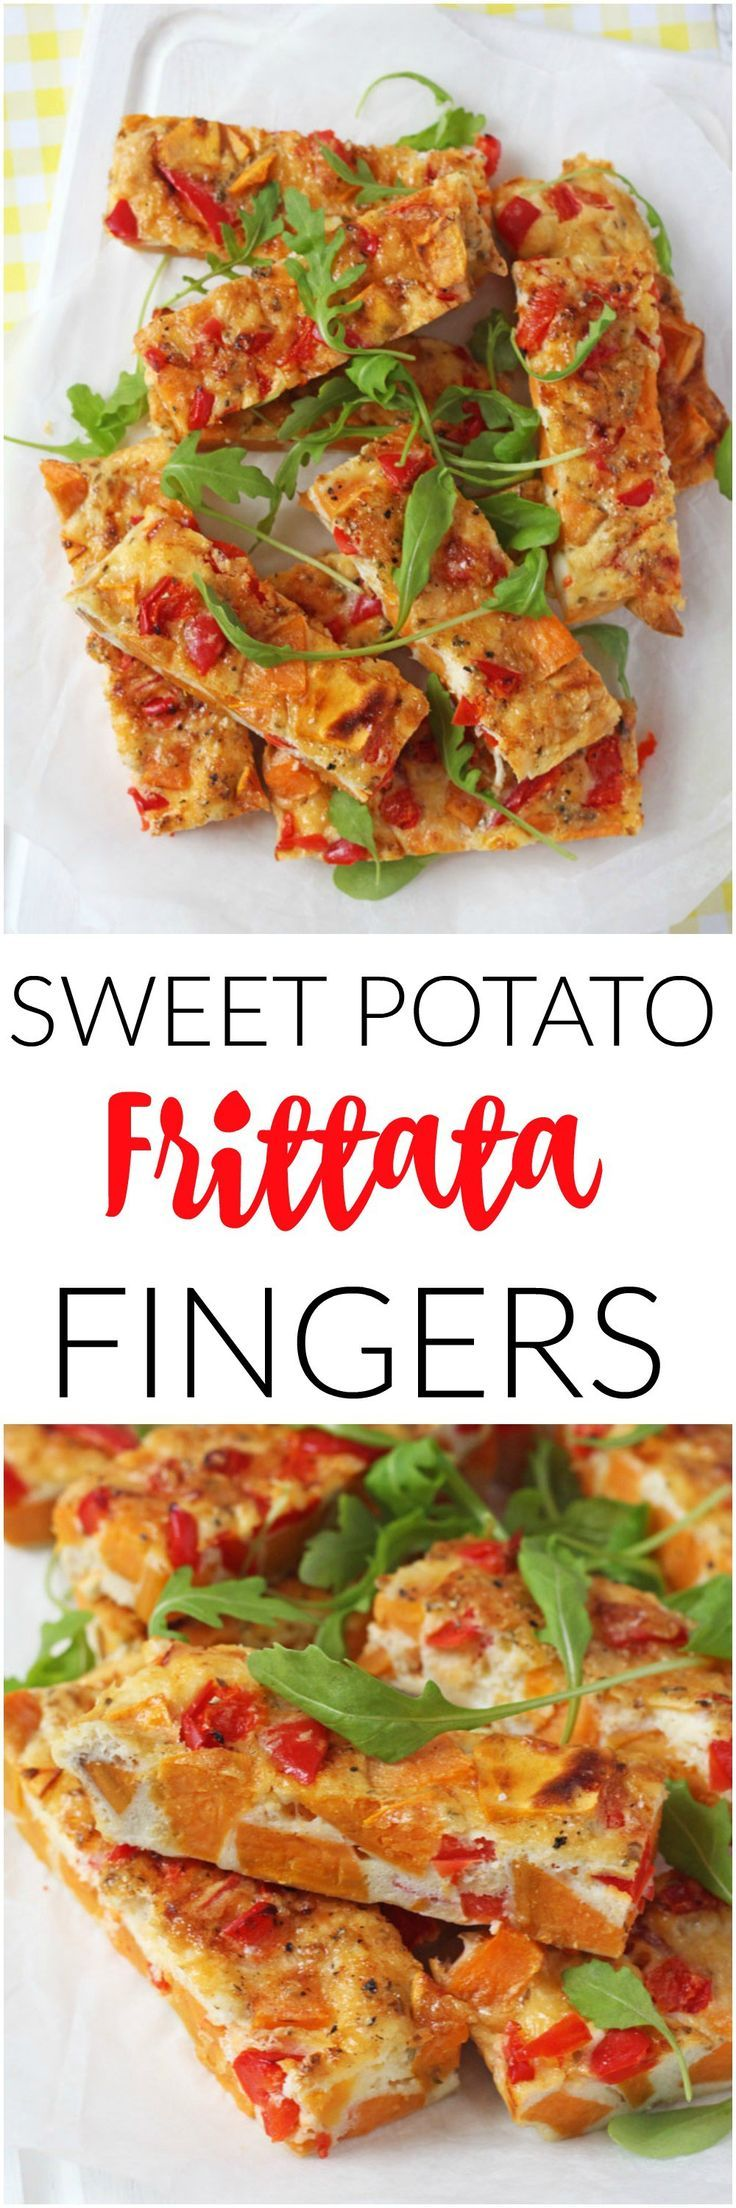 For A Delicious Filling And Healthy Lunch Try These Sweet Potato Frittata Slices Super